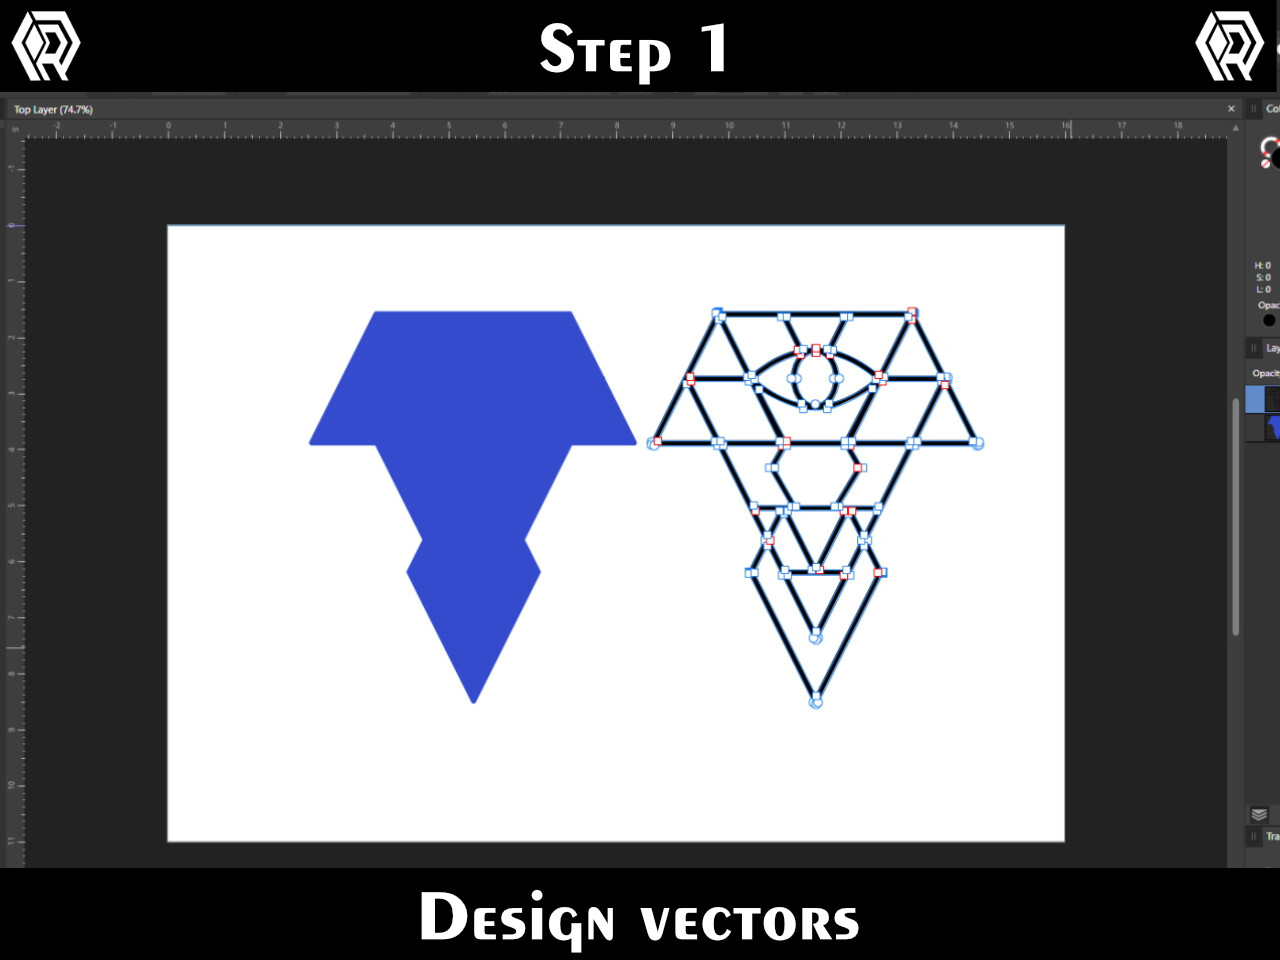 """Create two layers in a vector tool. I use Affinity Designer. The """"back"""" shape needs to be the filled in outline of the more complicated """"front"""" shape."""